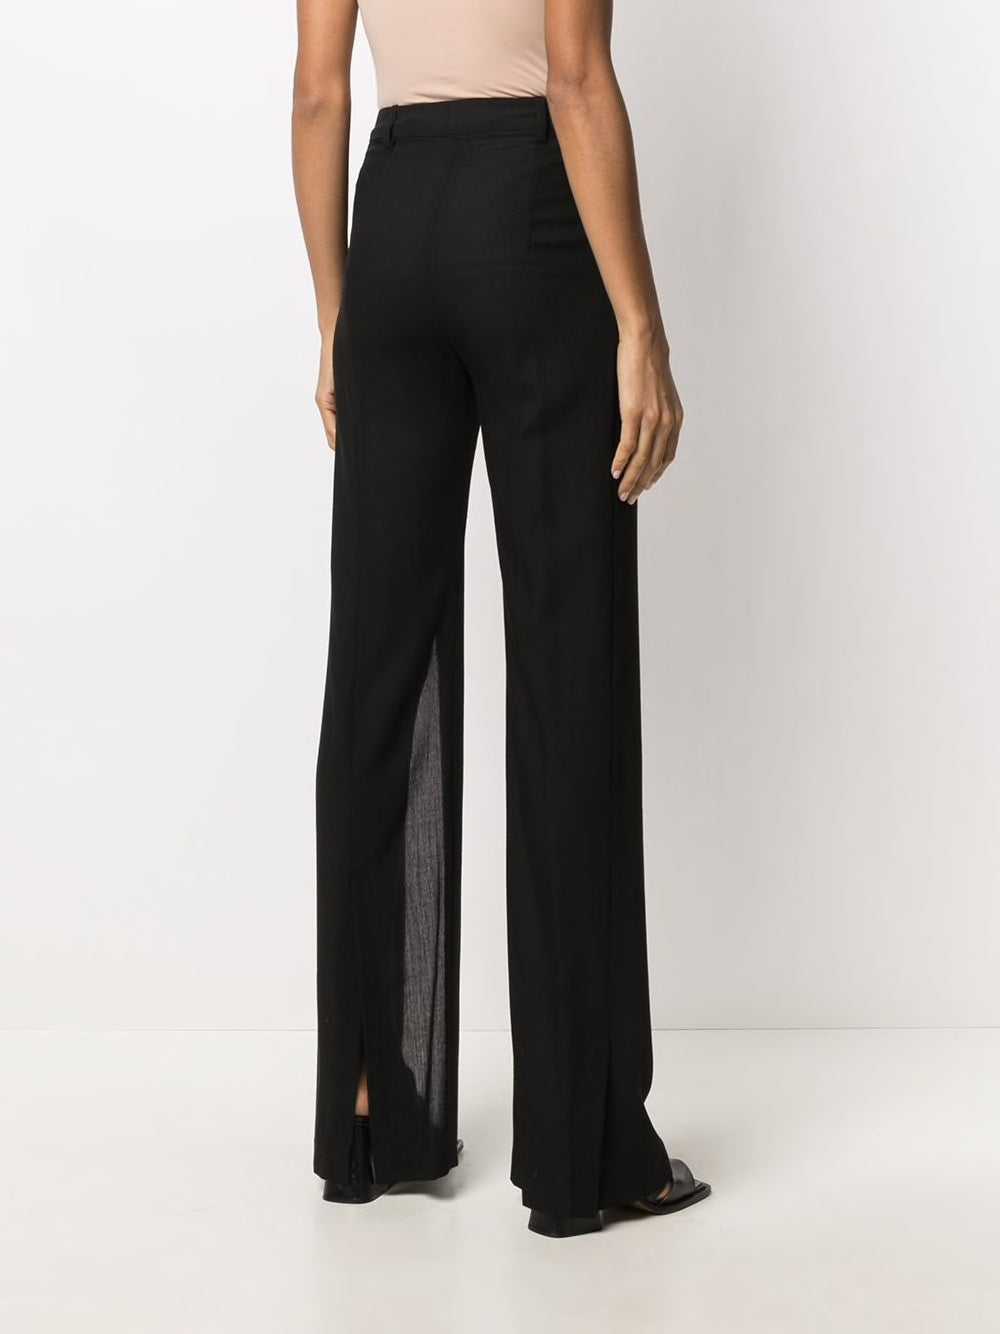 ANN DEMEULEMEESTER WOMEN LIGHTLAINE TROUSERS